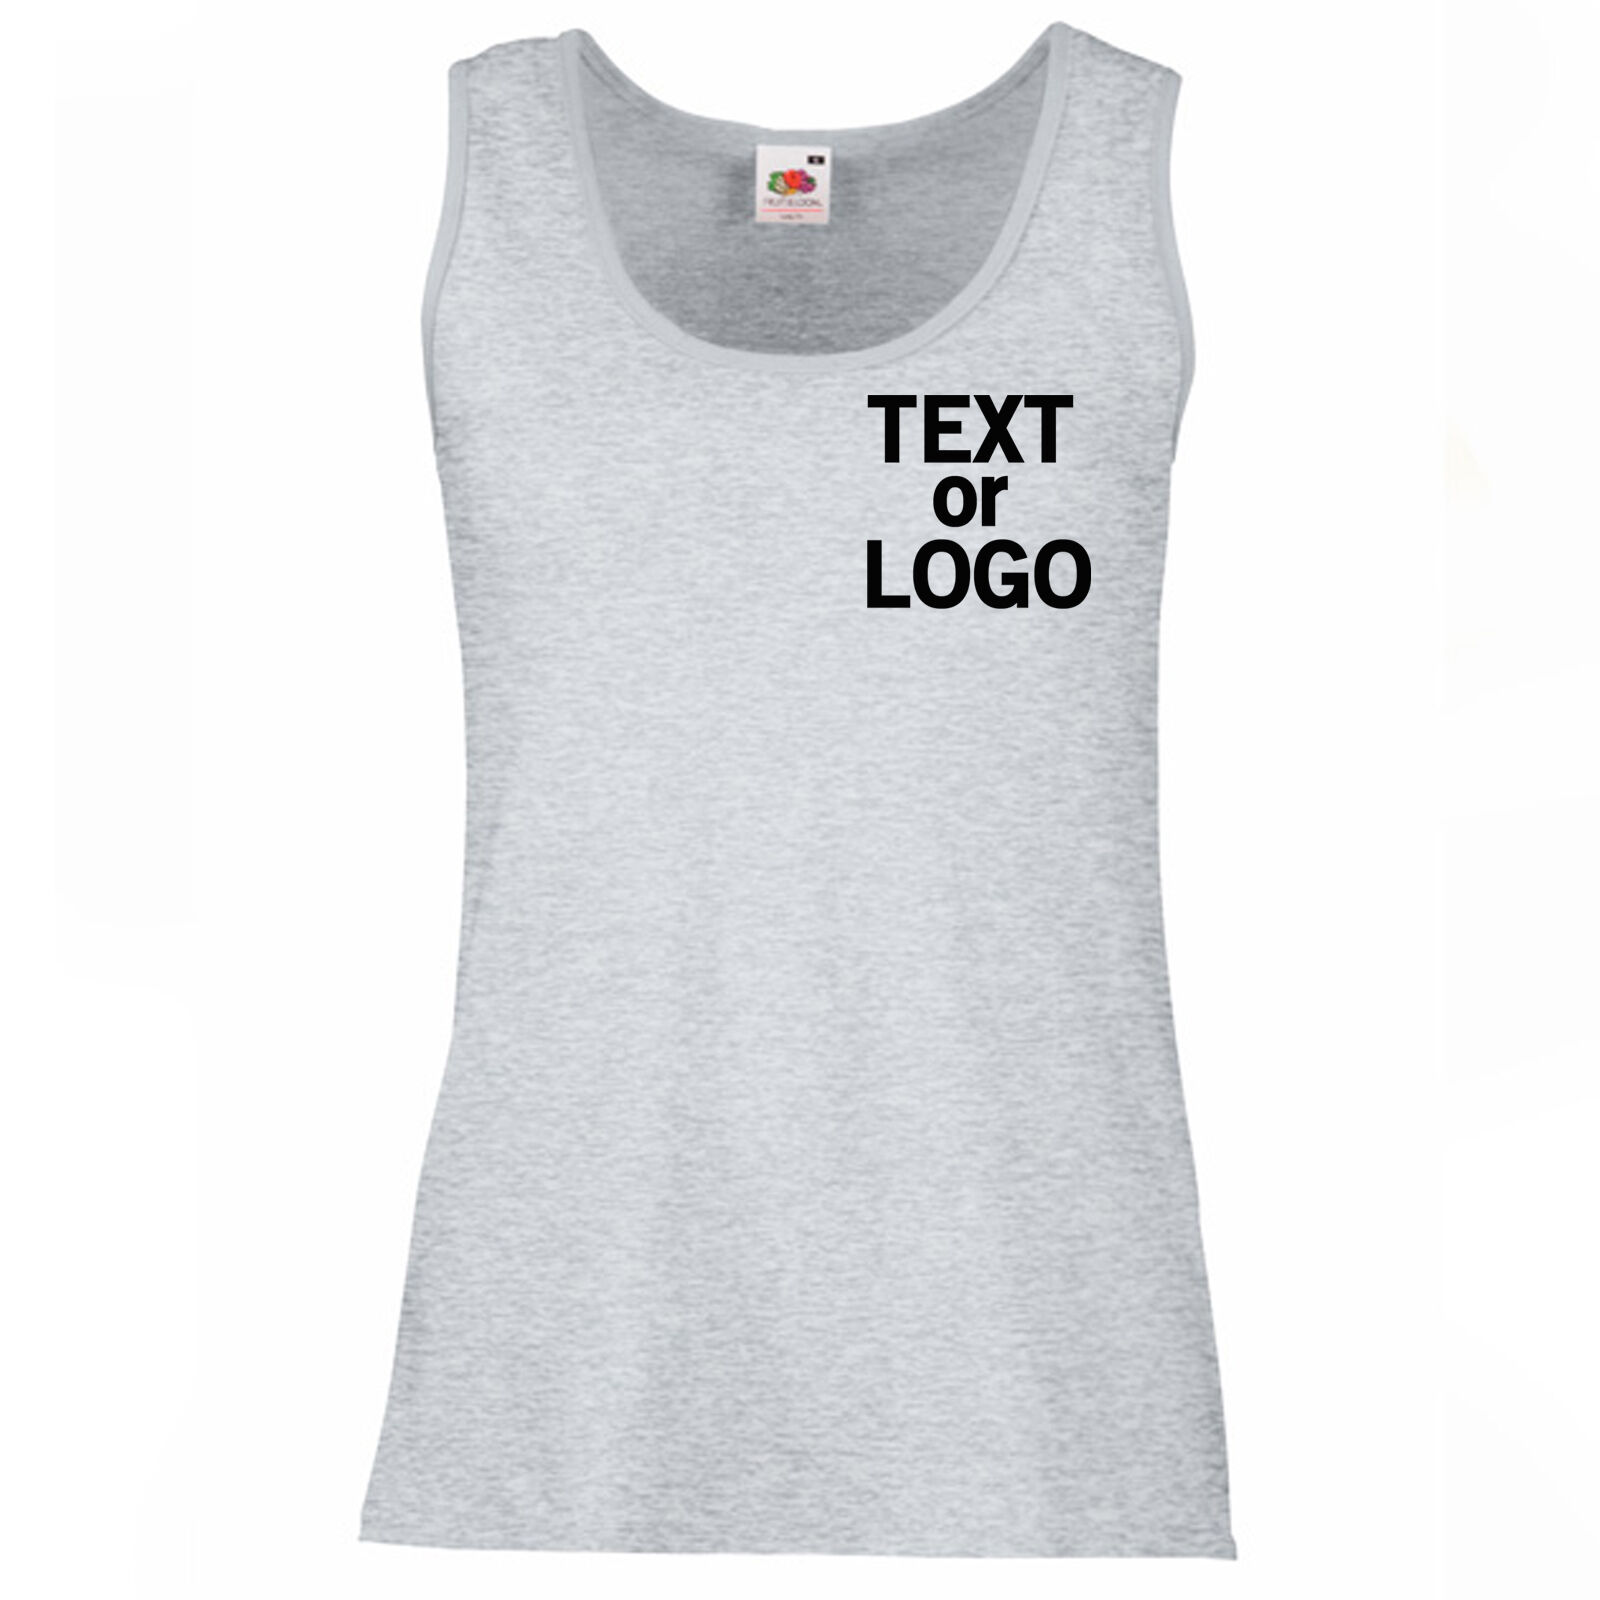 Ladies damen Lady Fit grau Vest Personalised Text Logo Design x10 Bulk Pack